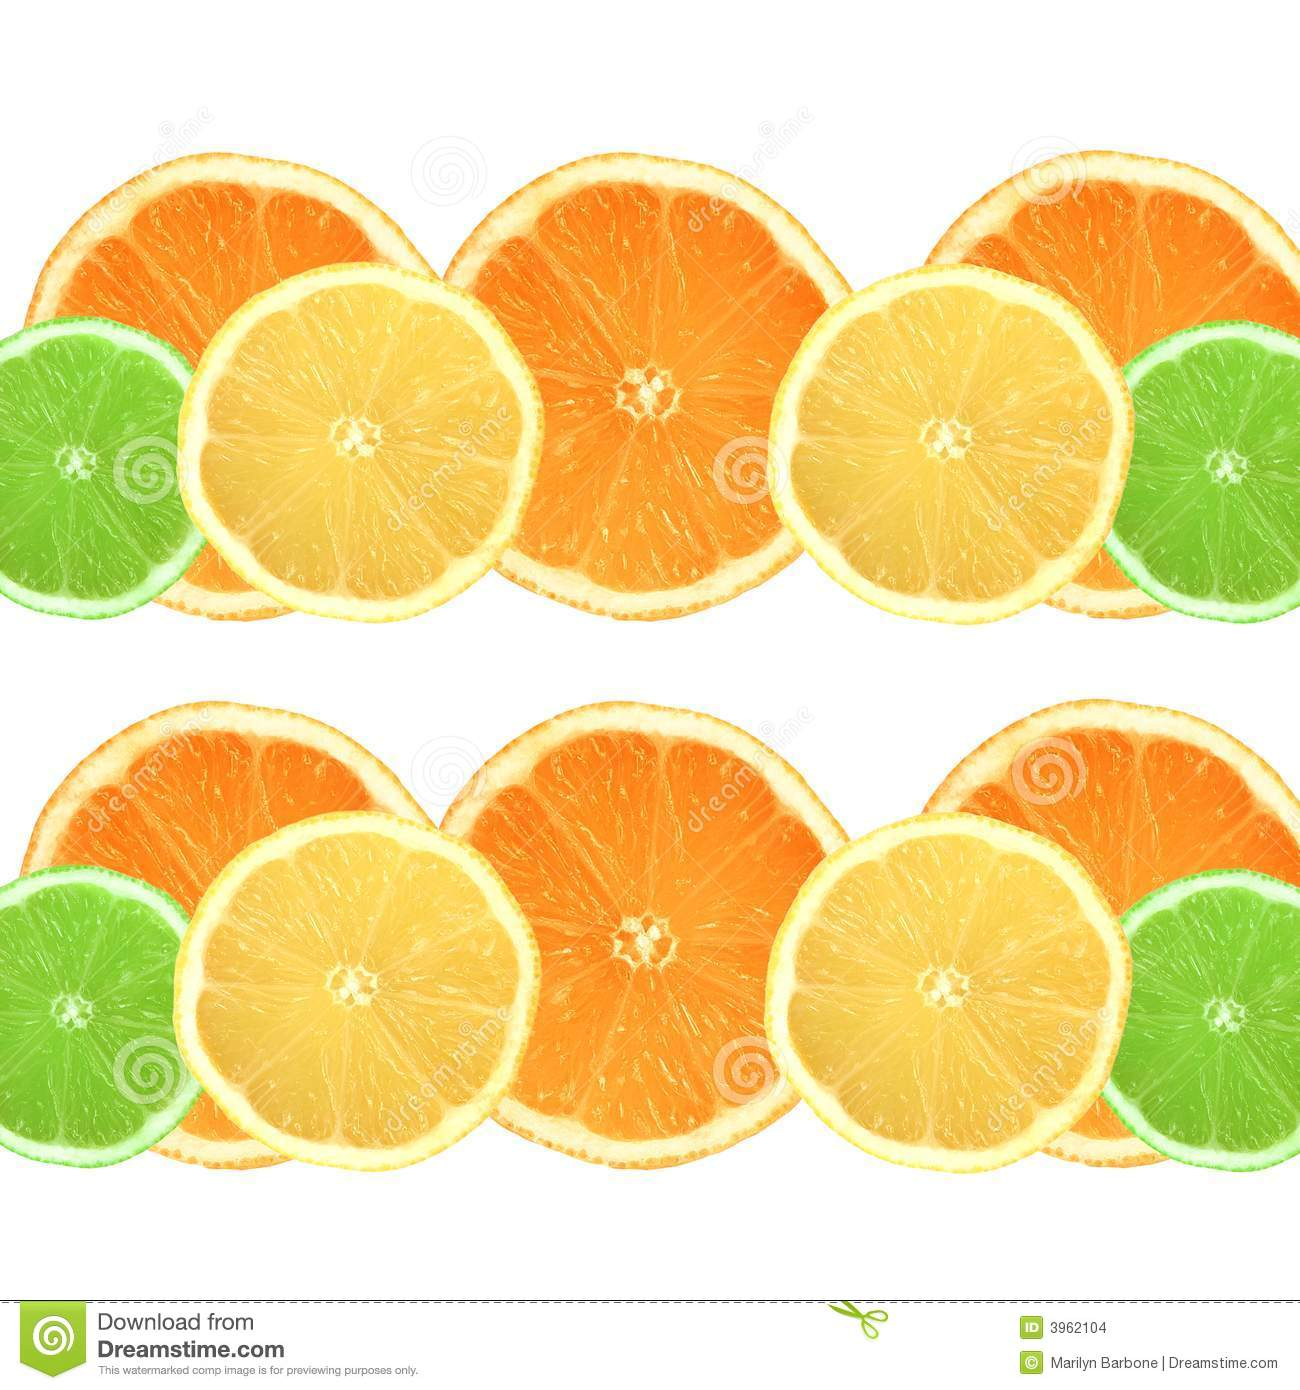 Oranges, Lemons And Limes Stock Images - Image: 3962104